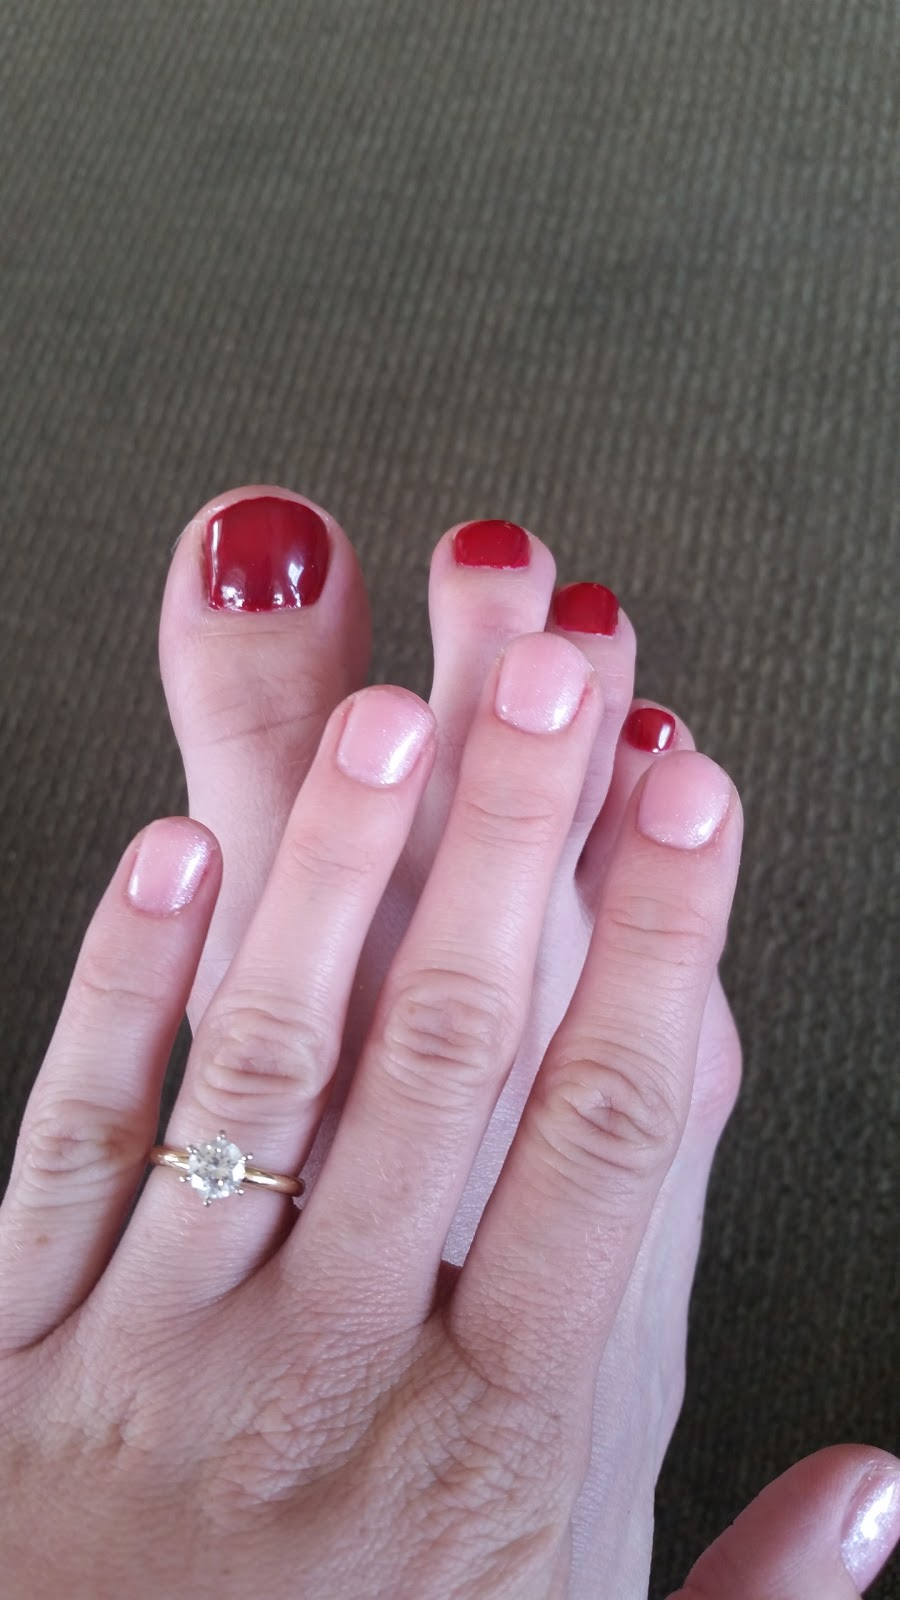 D-Pro Nails Spa & Barber, 750 North Main Street, Spanish Fork ...